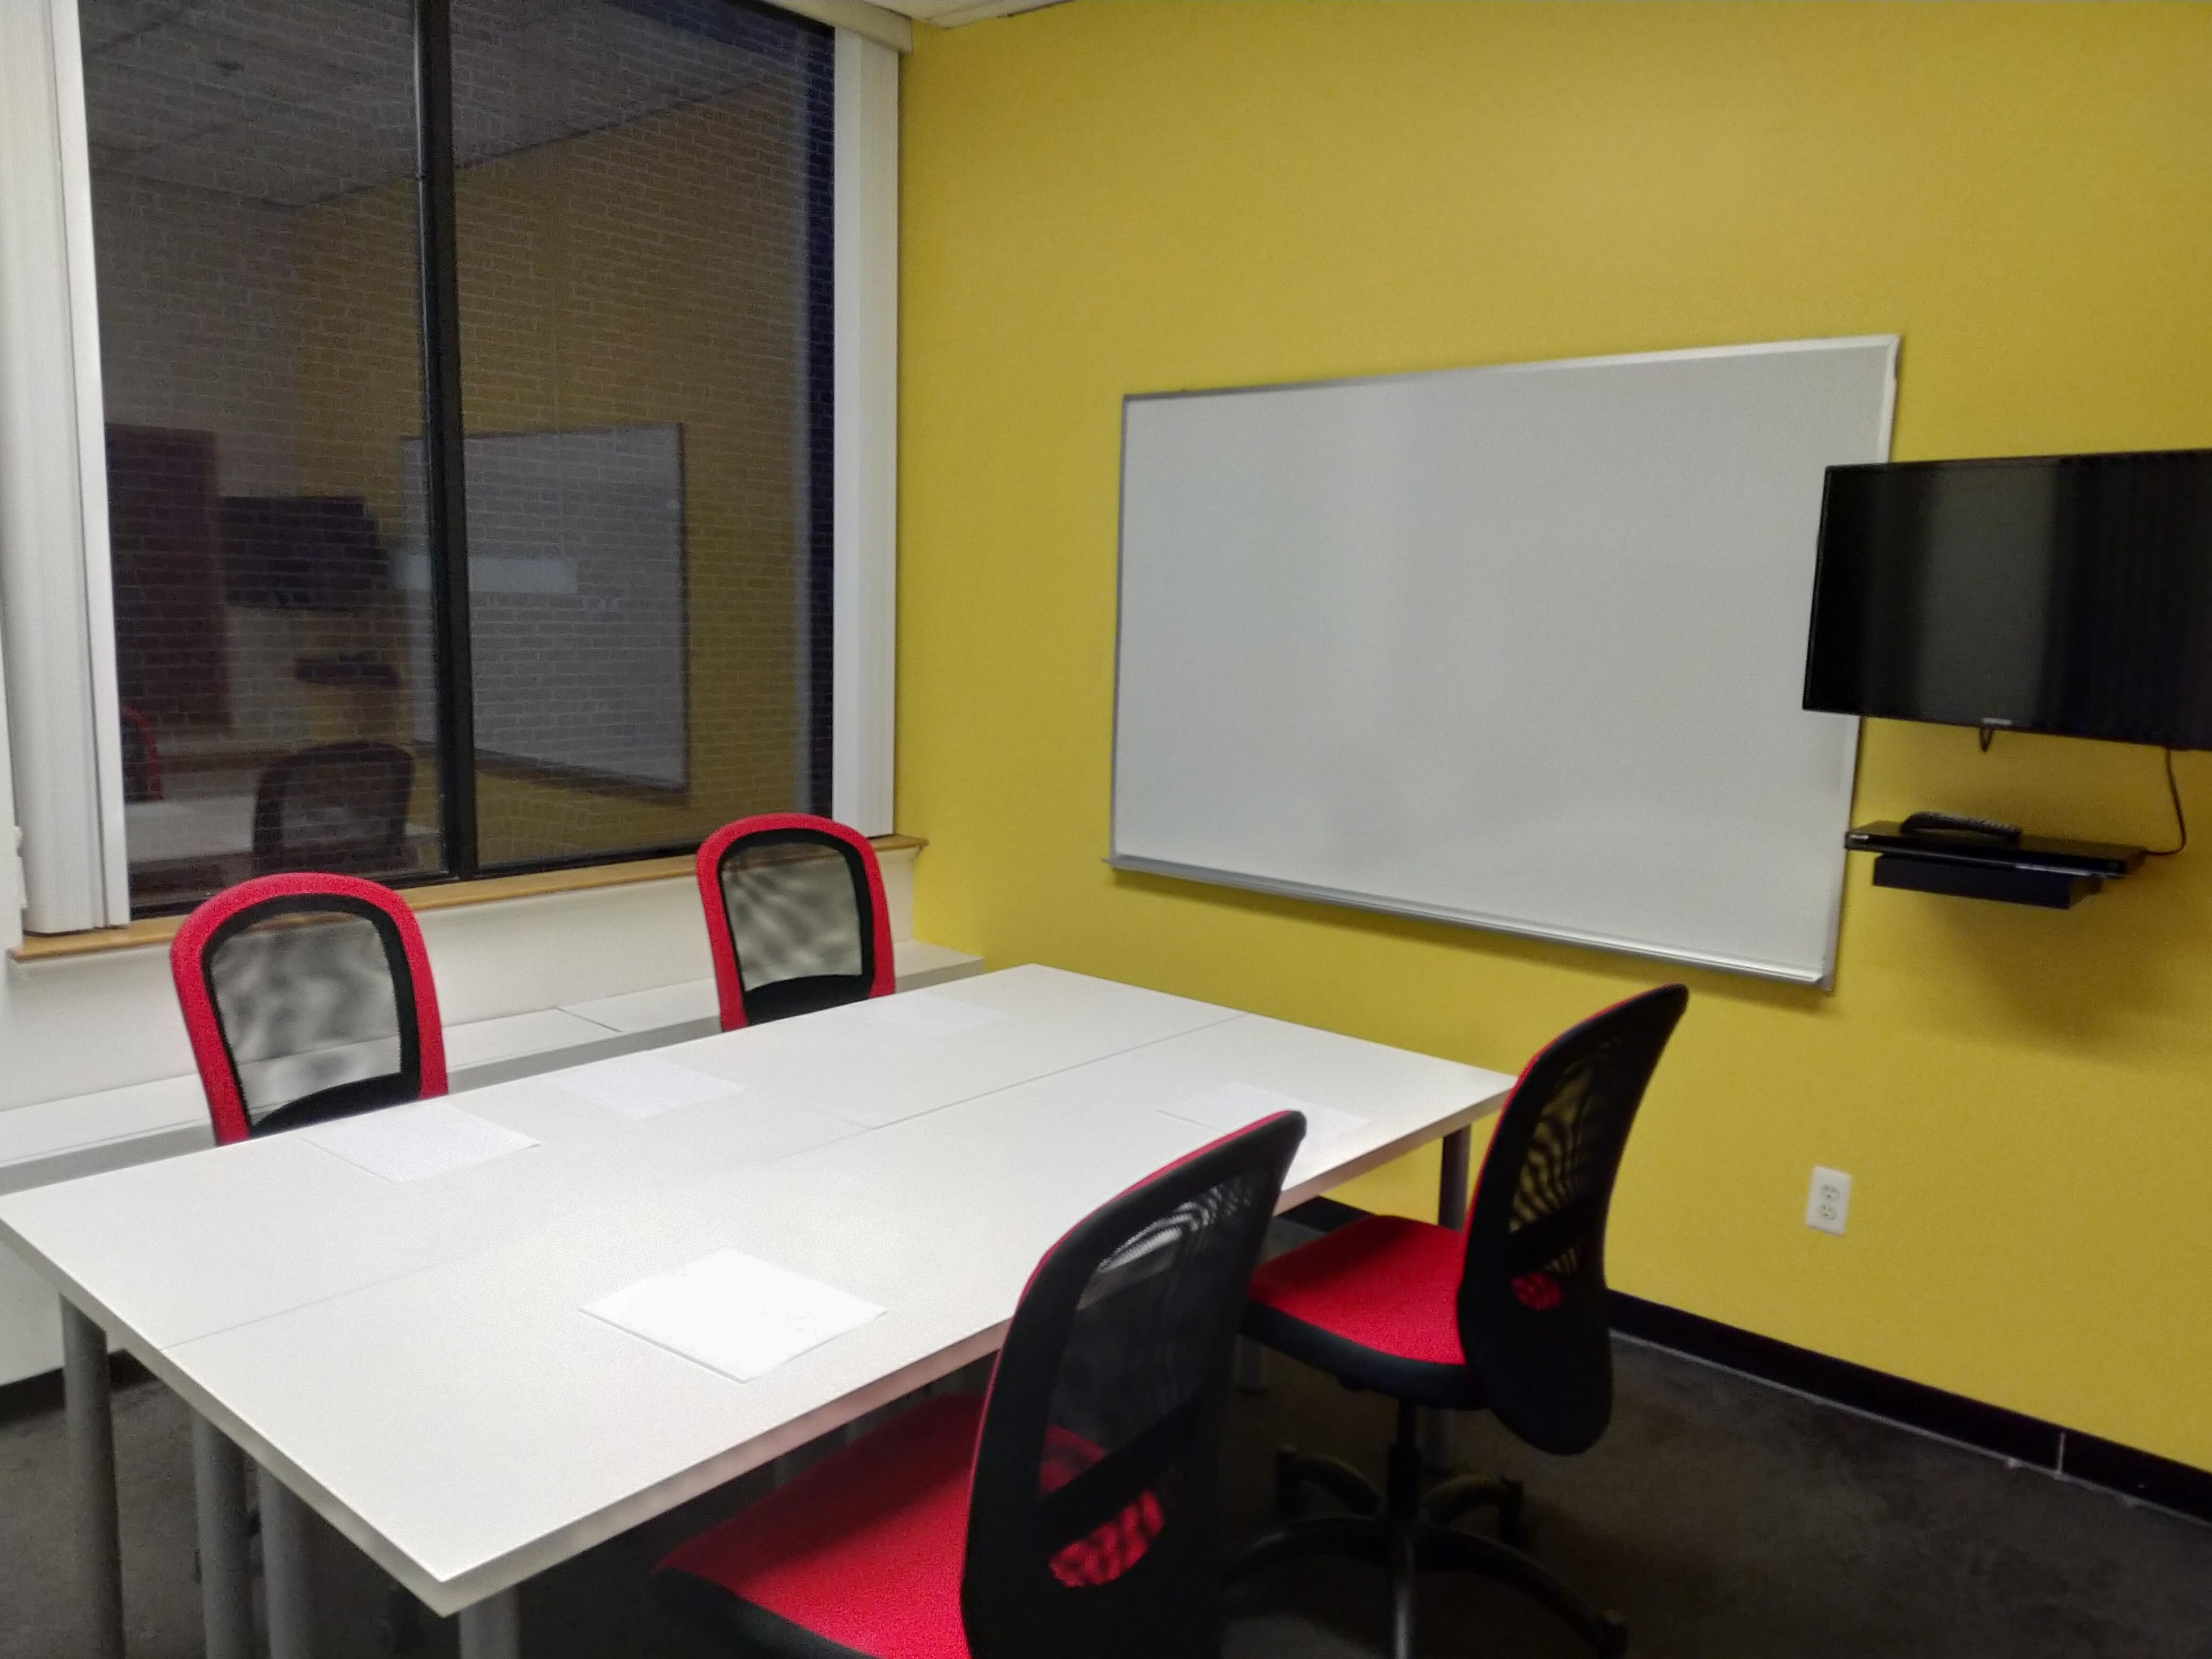 Harvard Square Office Space - Room for 4